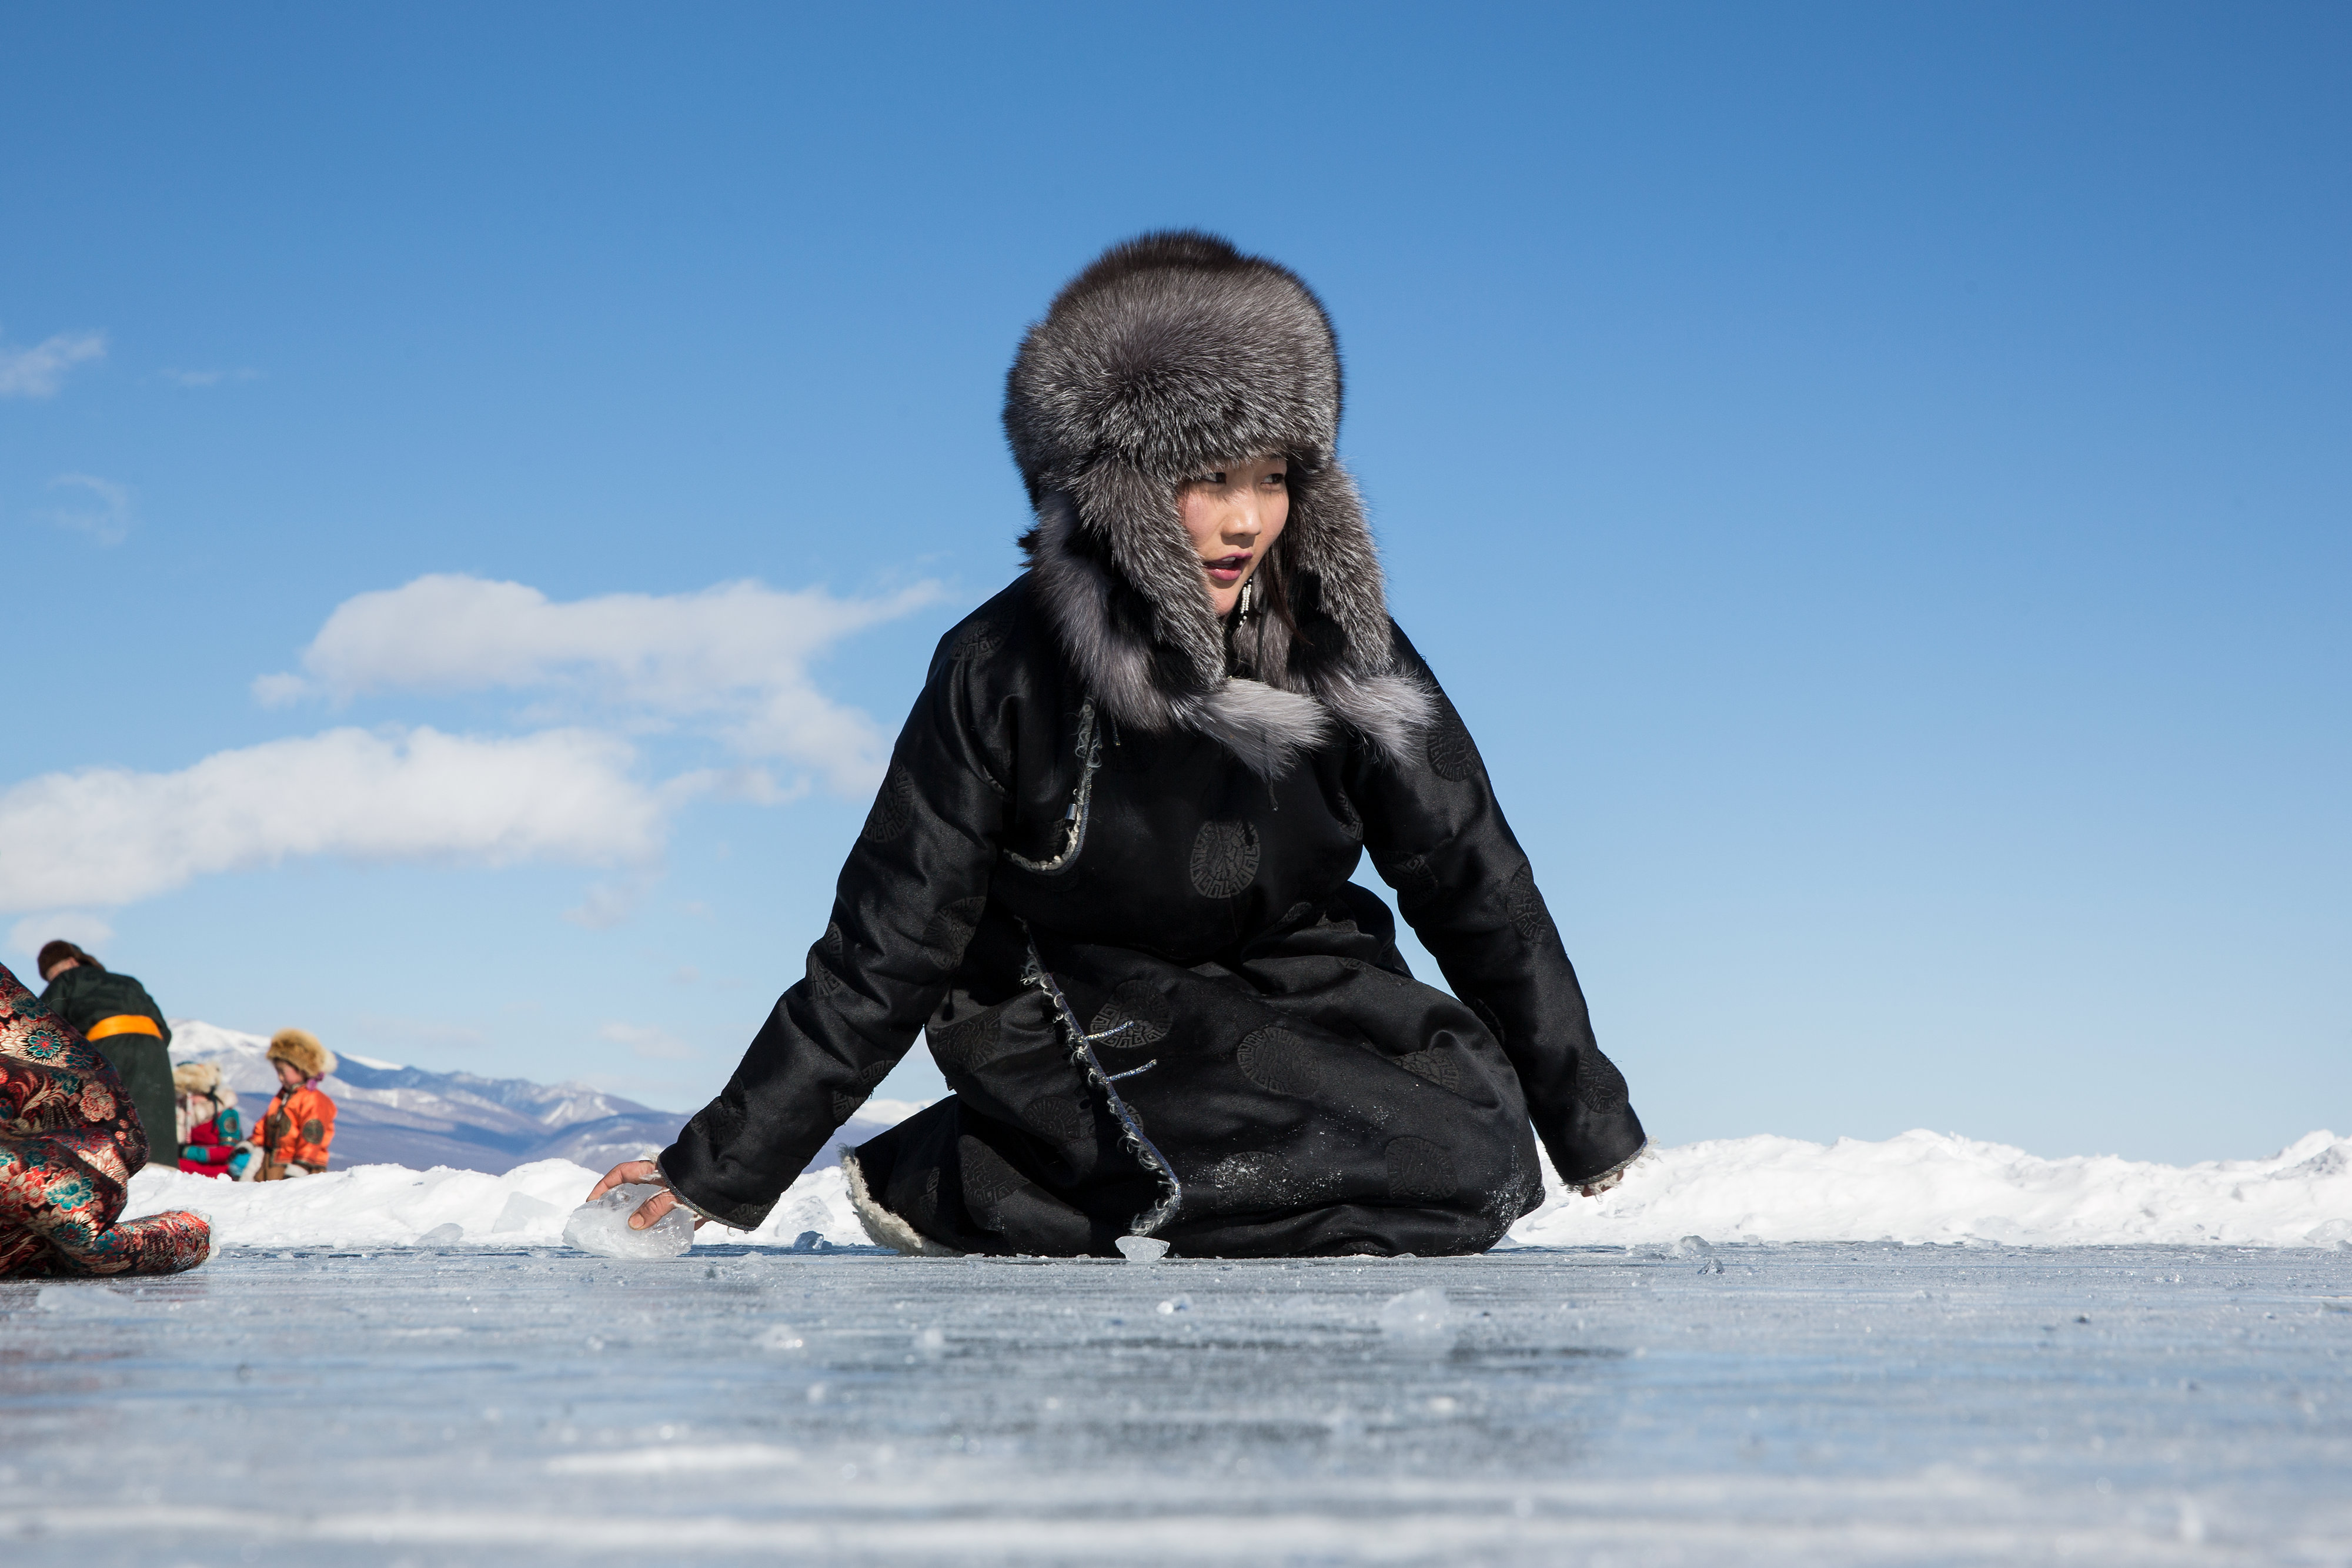 A young Mongolian woman plays a game sliding pieces of ice at the Lake Khovsgol Ice Festival in Khatgal, Mongolia, on March 4, 2017.